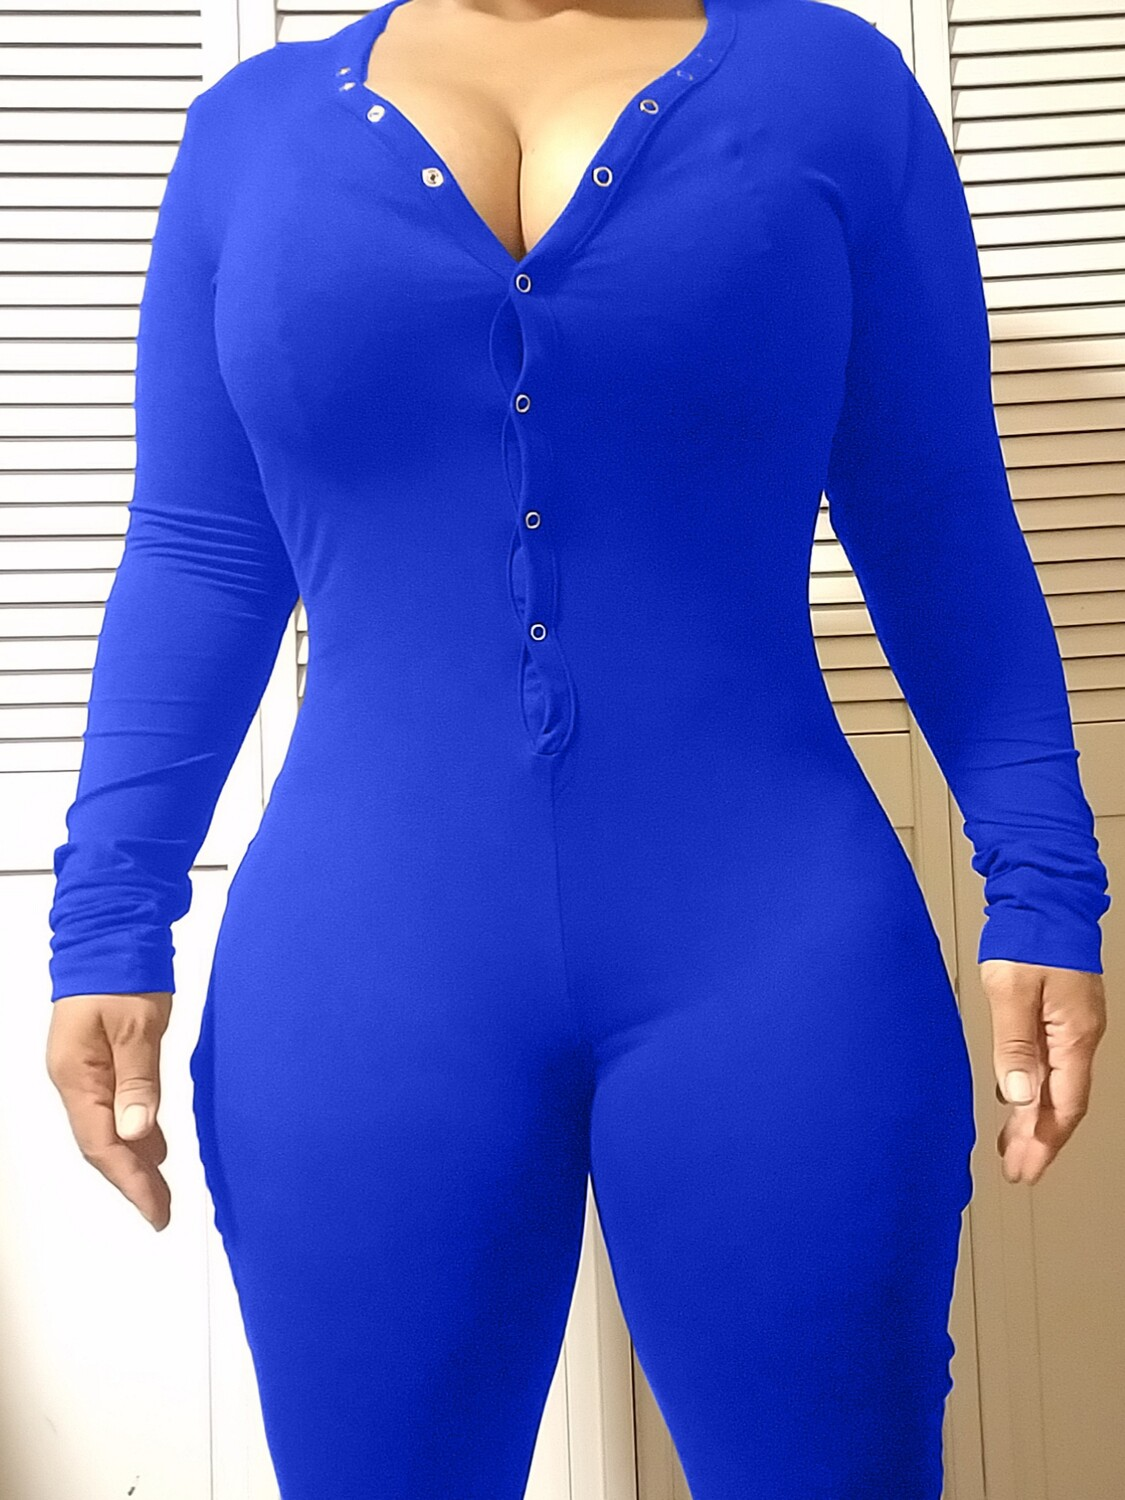 Women's Long Sleeve Shorts Playsuit, Casual, Party, Onesie Pajama Wear- PURE COLOR Royal Blue